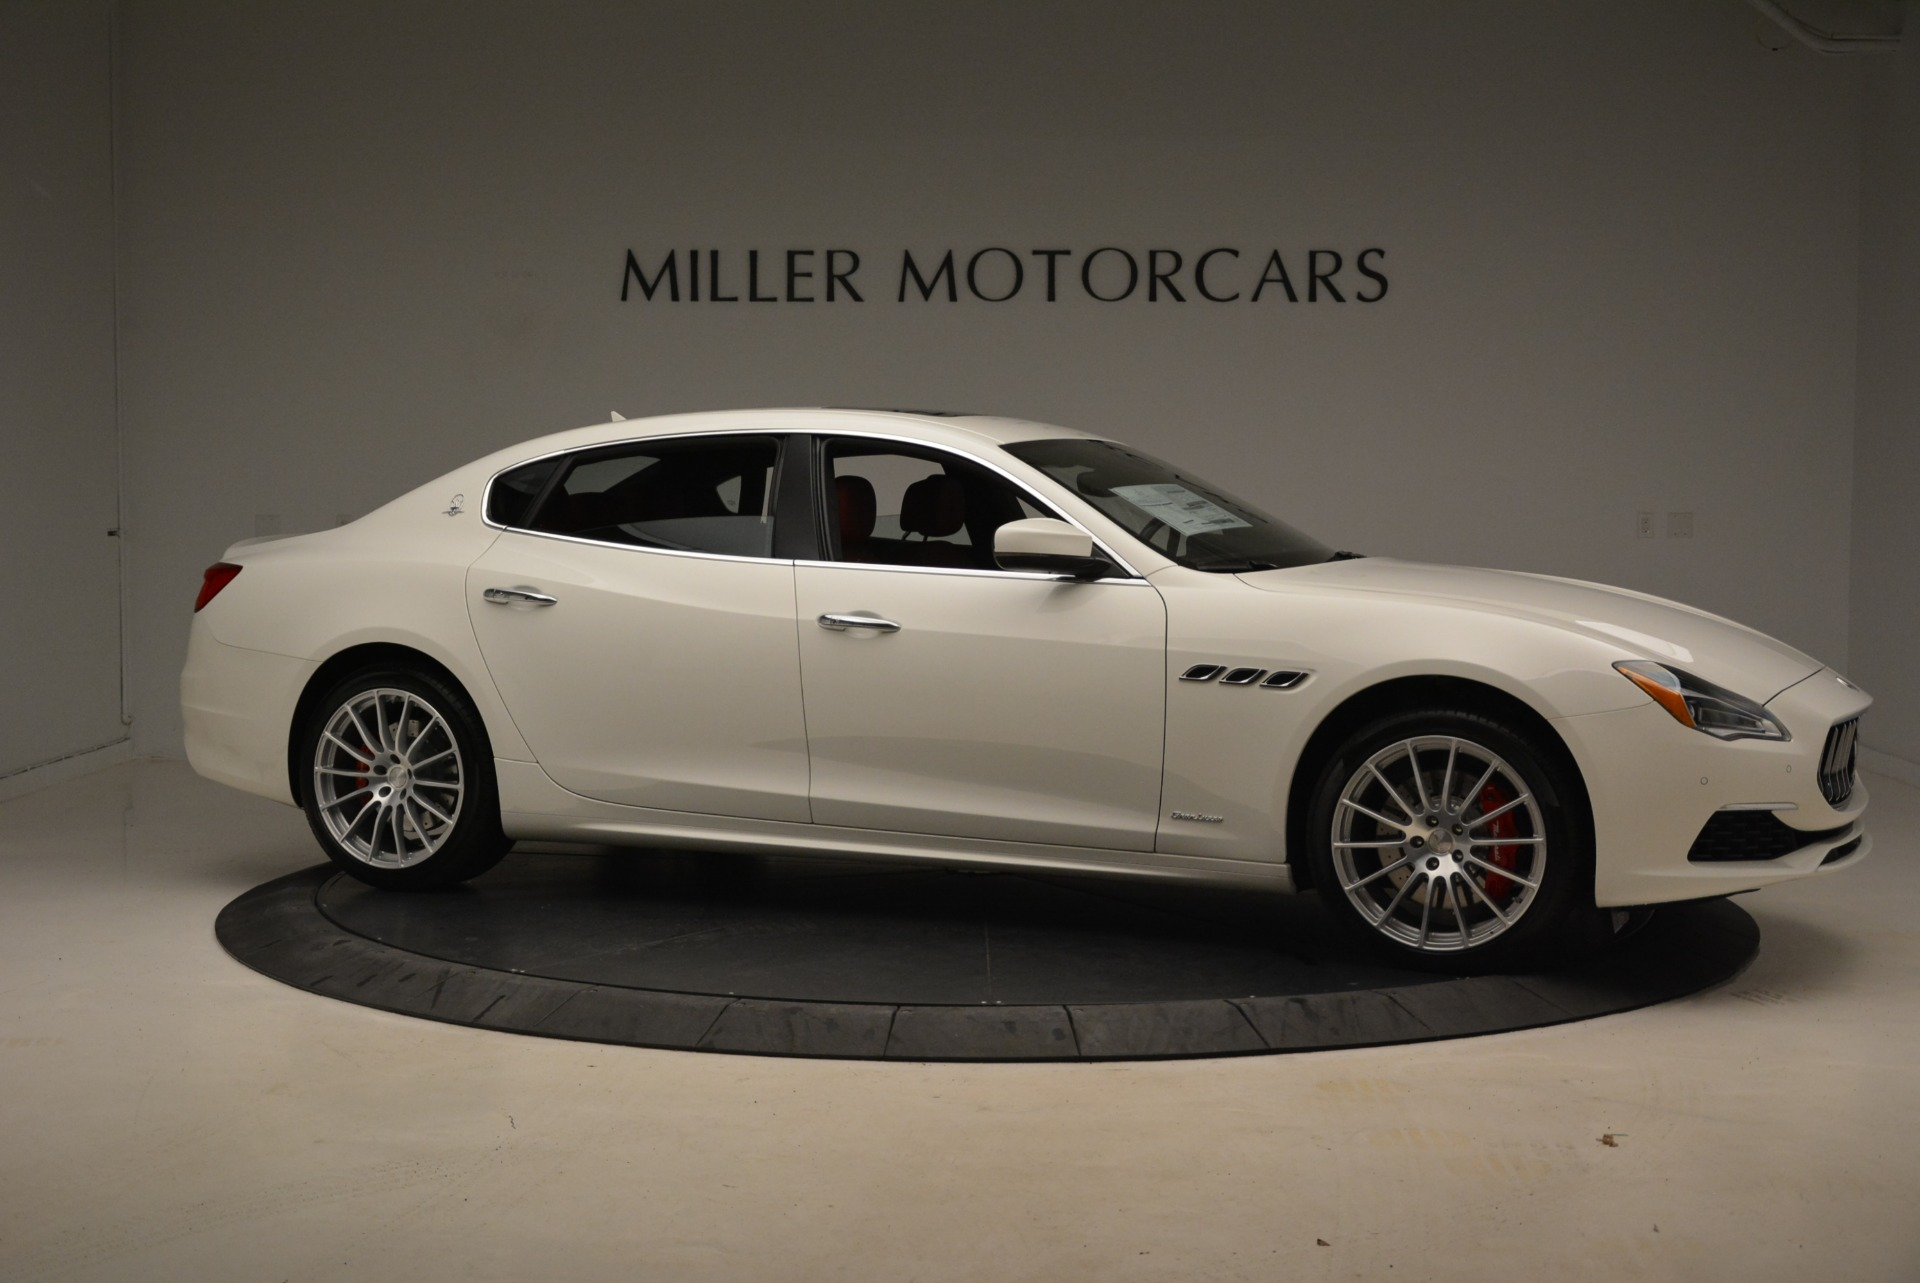 New 2018 Maserati Quattroporte S Q4 GranLusso For Sale In Westport, CT 2085_p13